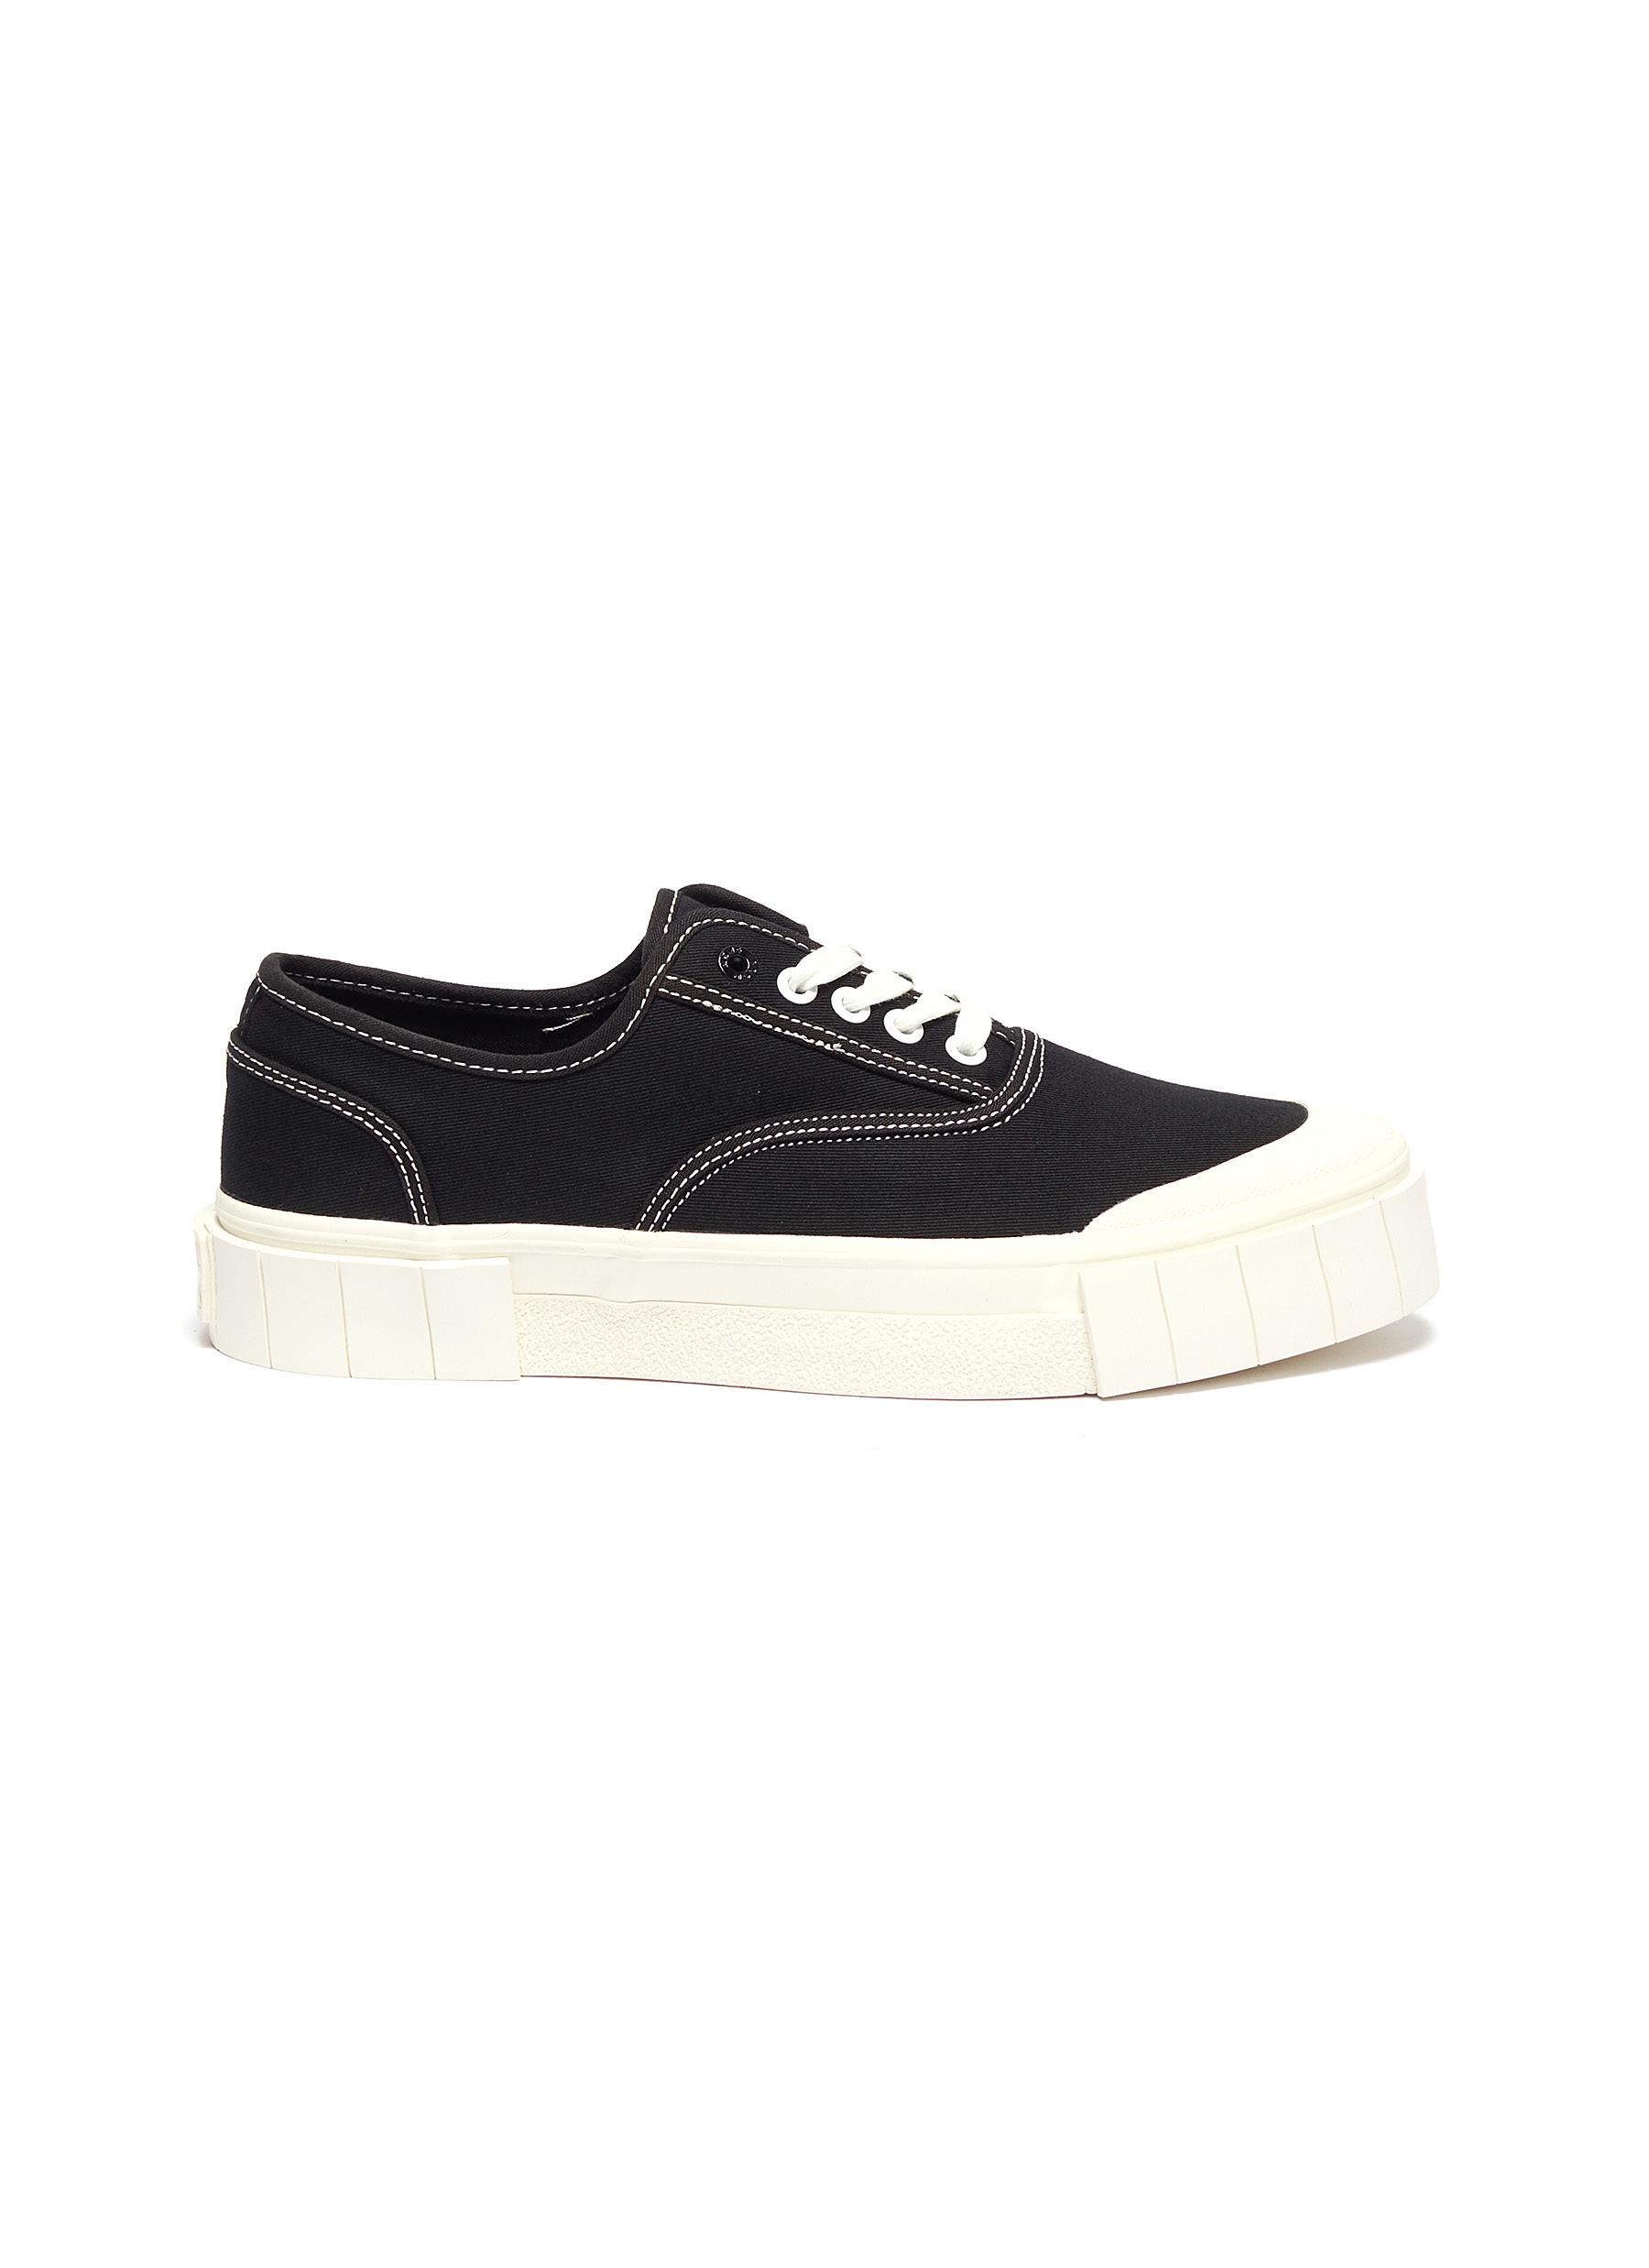 Bagger 2 contrast topstitching cotton sneakers by Good News